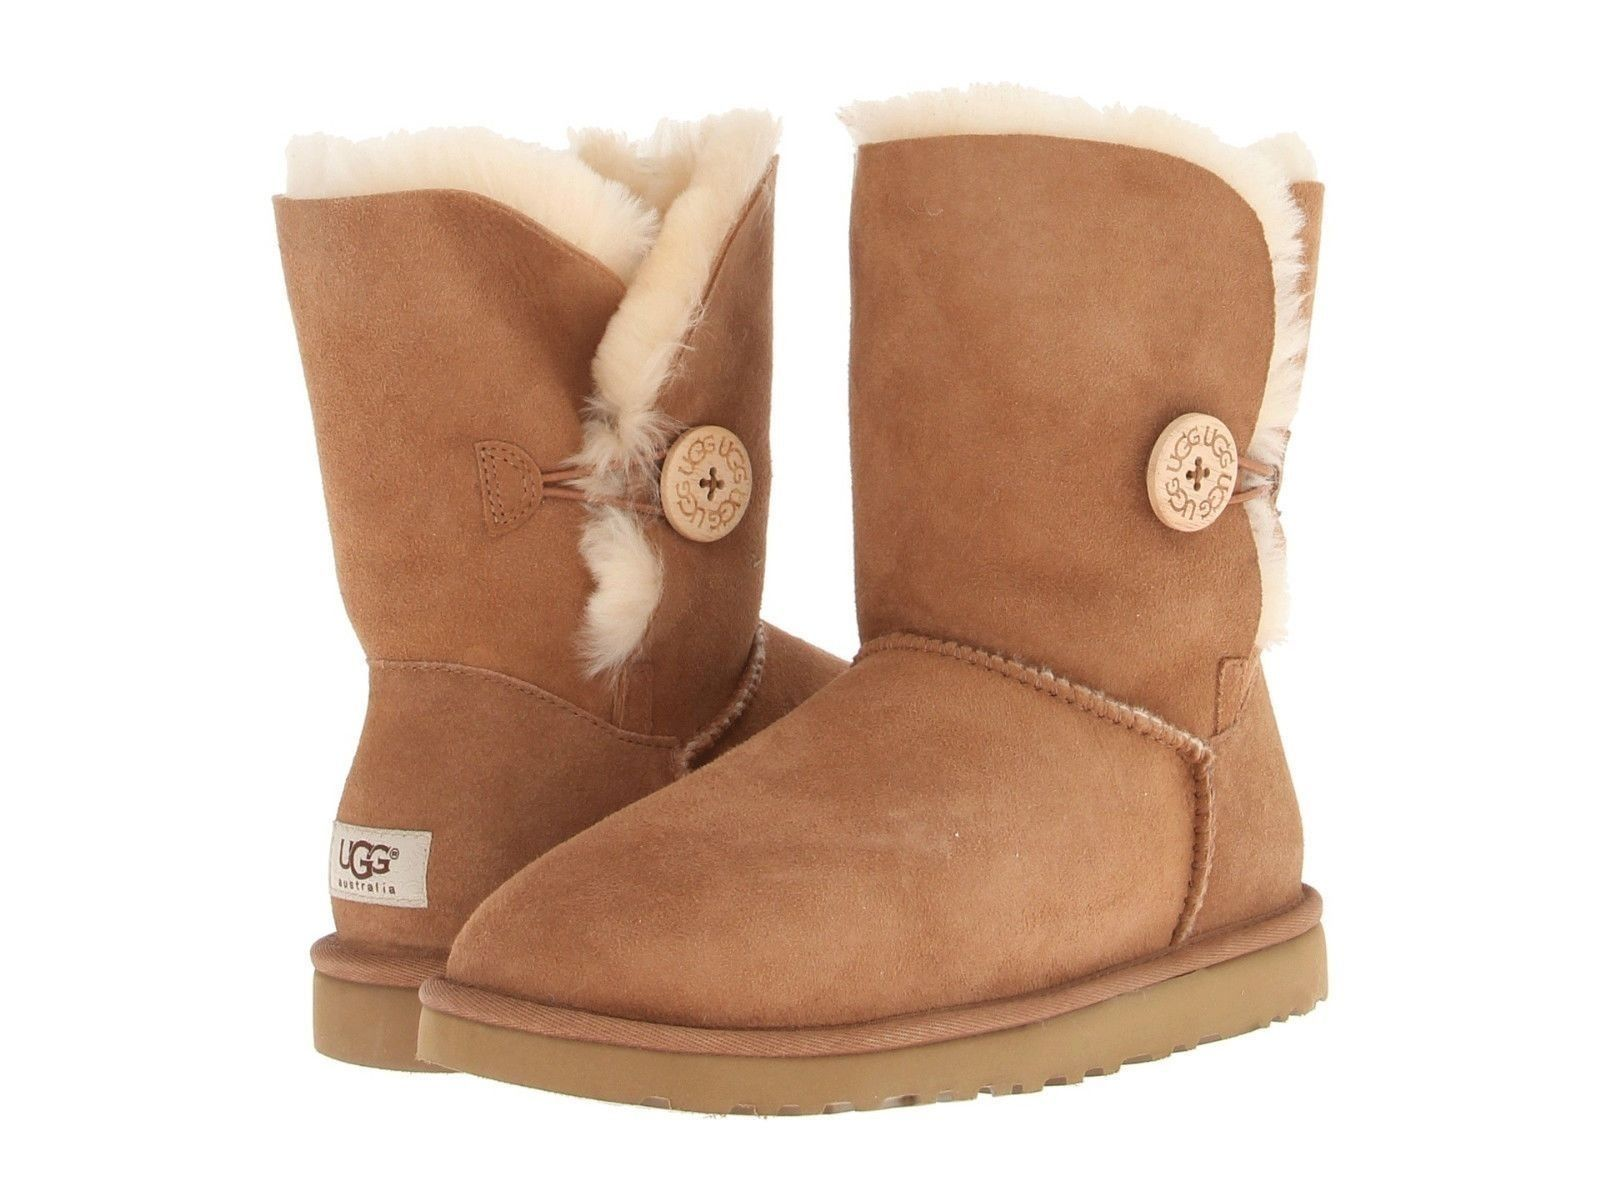 660146a71fb Details about UGG Classic Short Bailey Button Chestnut Suede ...